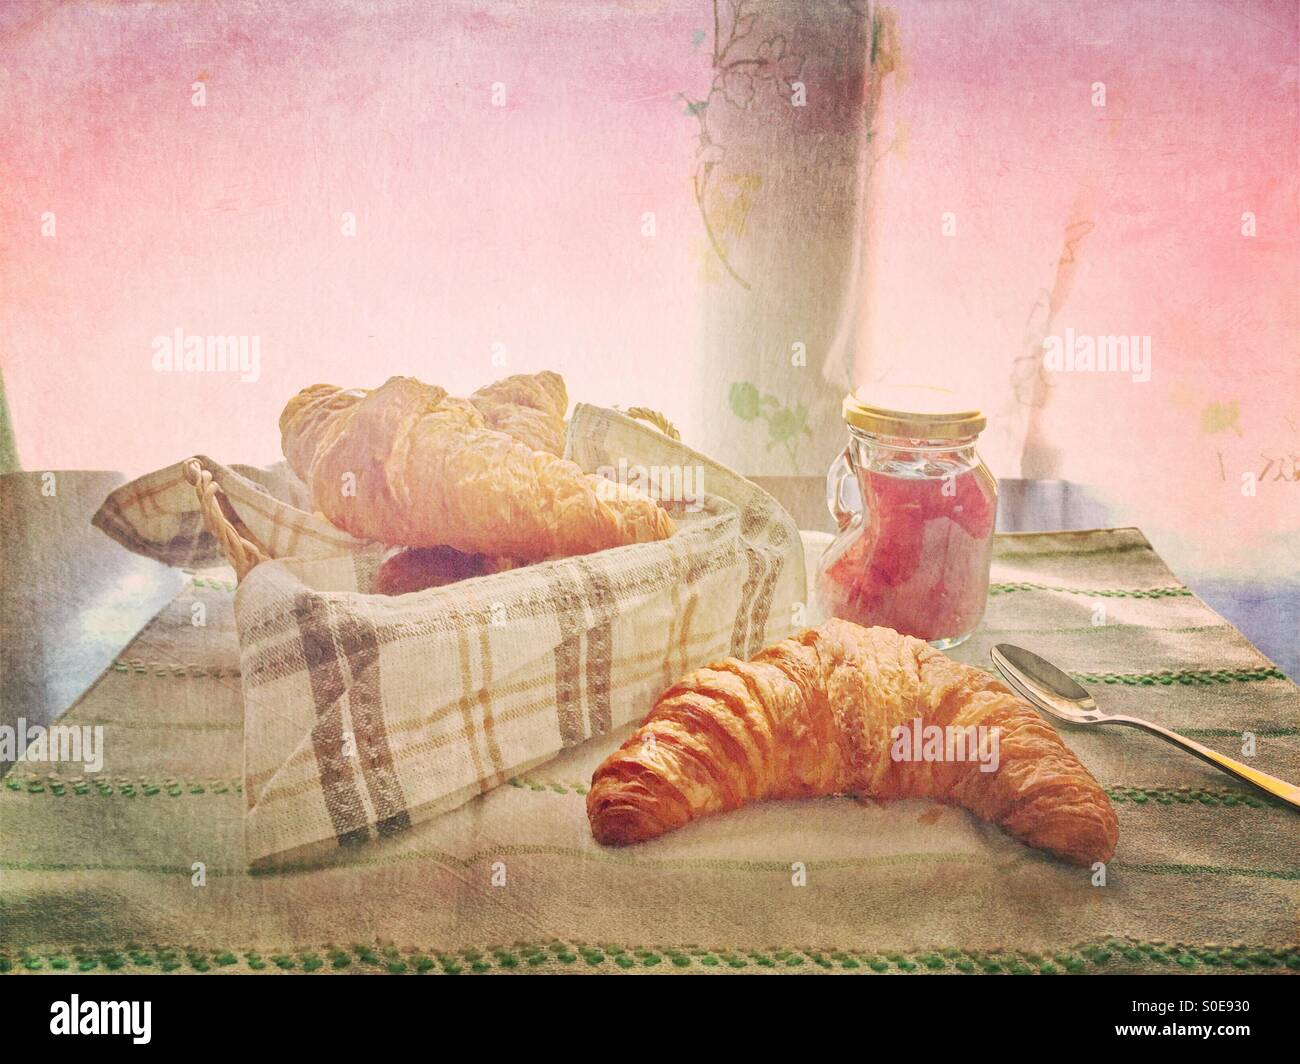 Small jar of homemade strawberry jam, bread basket with croissant, striped cloth and silver spoon. Vintage texture Stock Photo